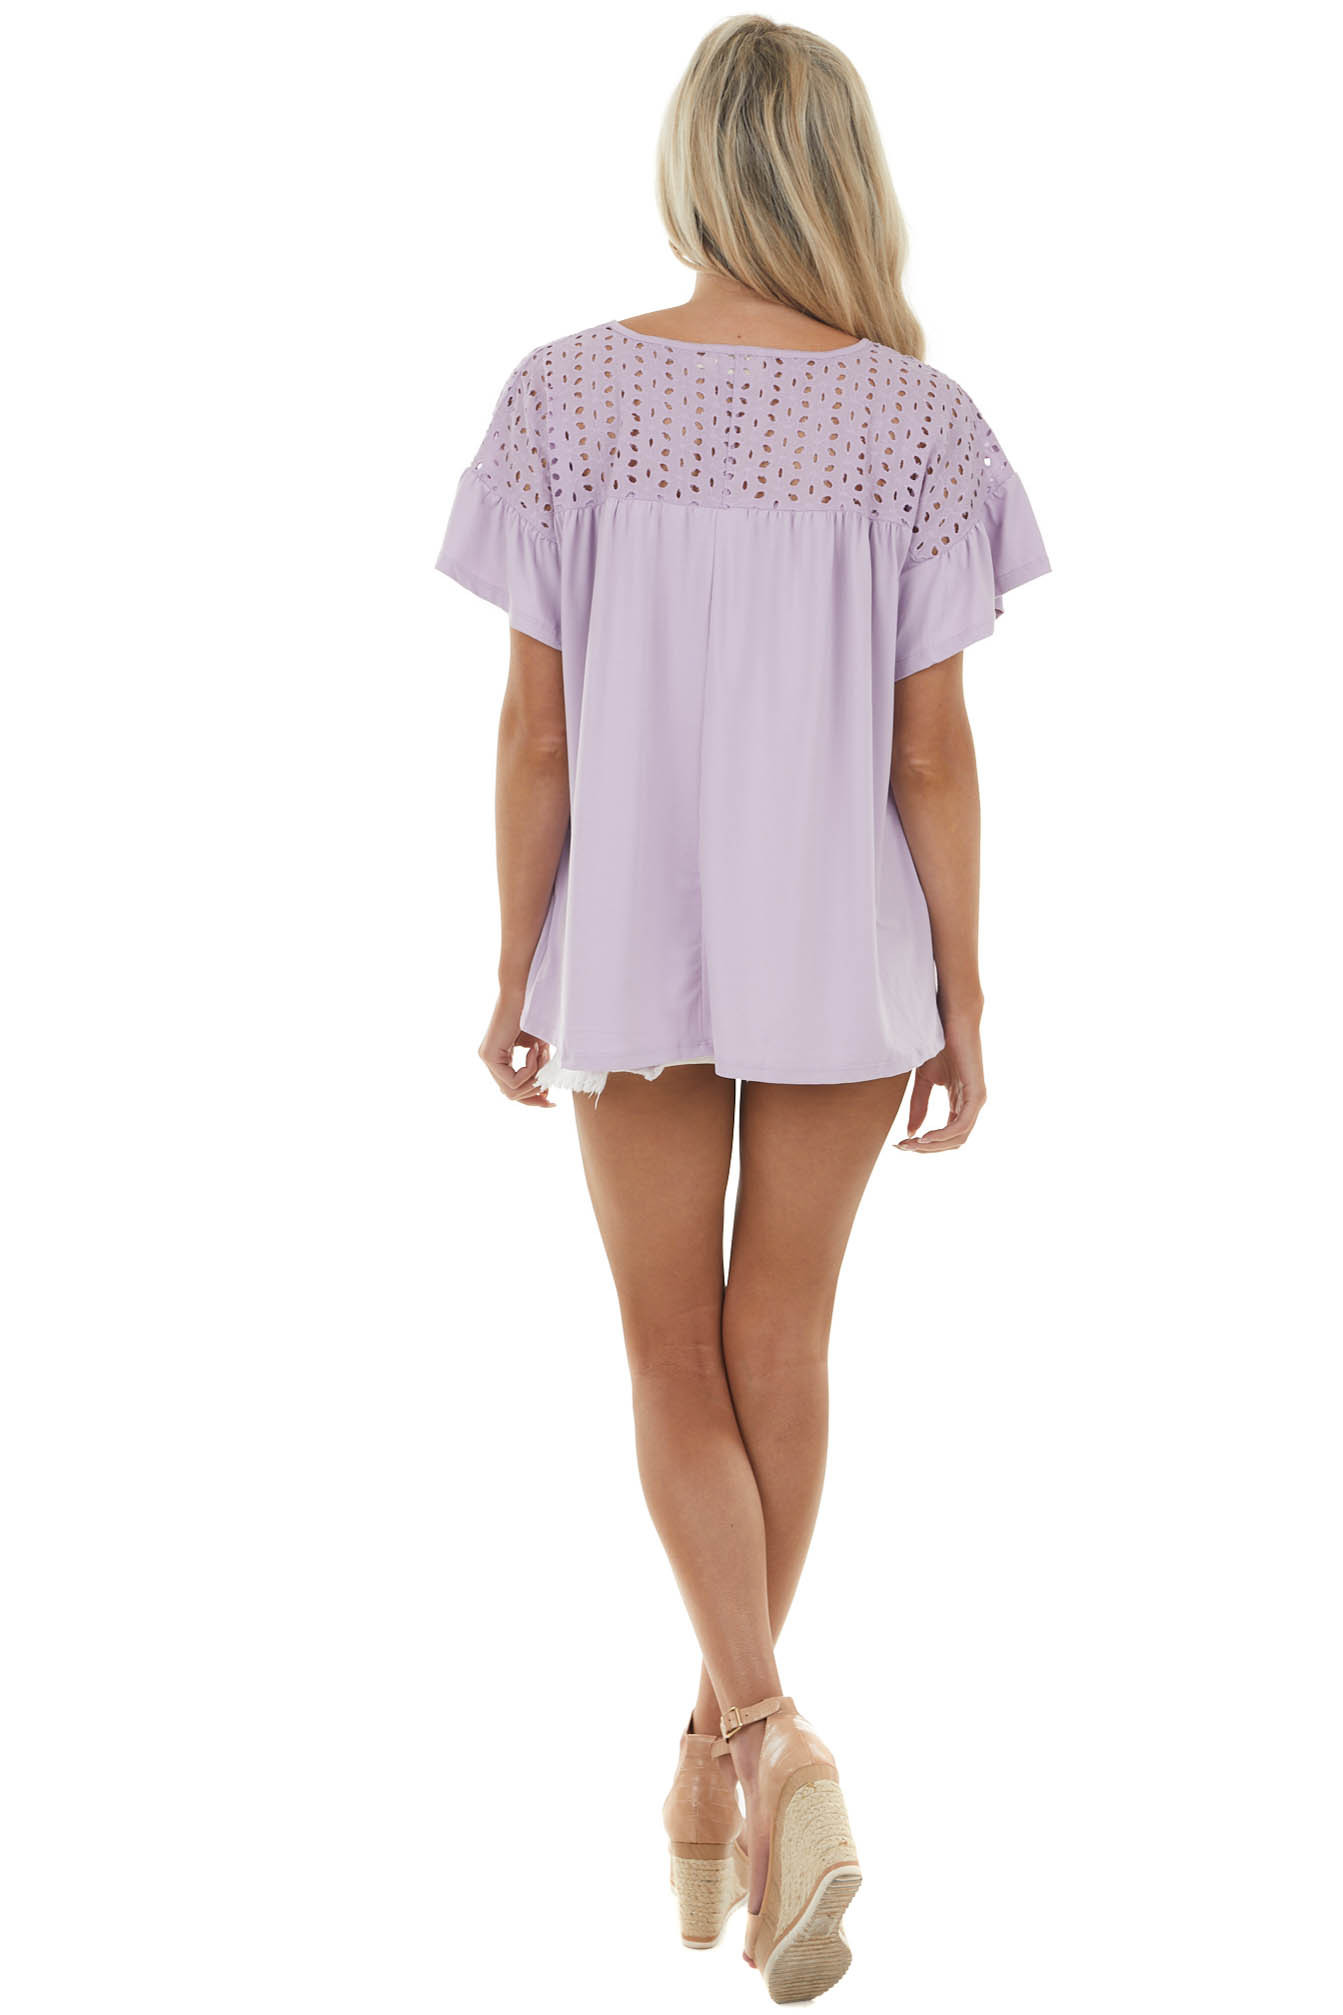 Pastel Lavender Babydoll Knit Top with Eyelet Lace Detail